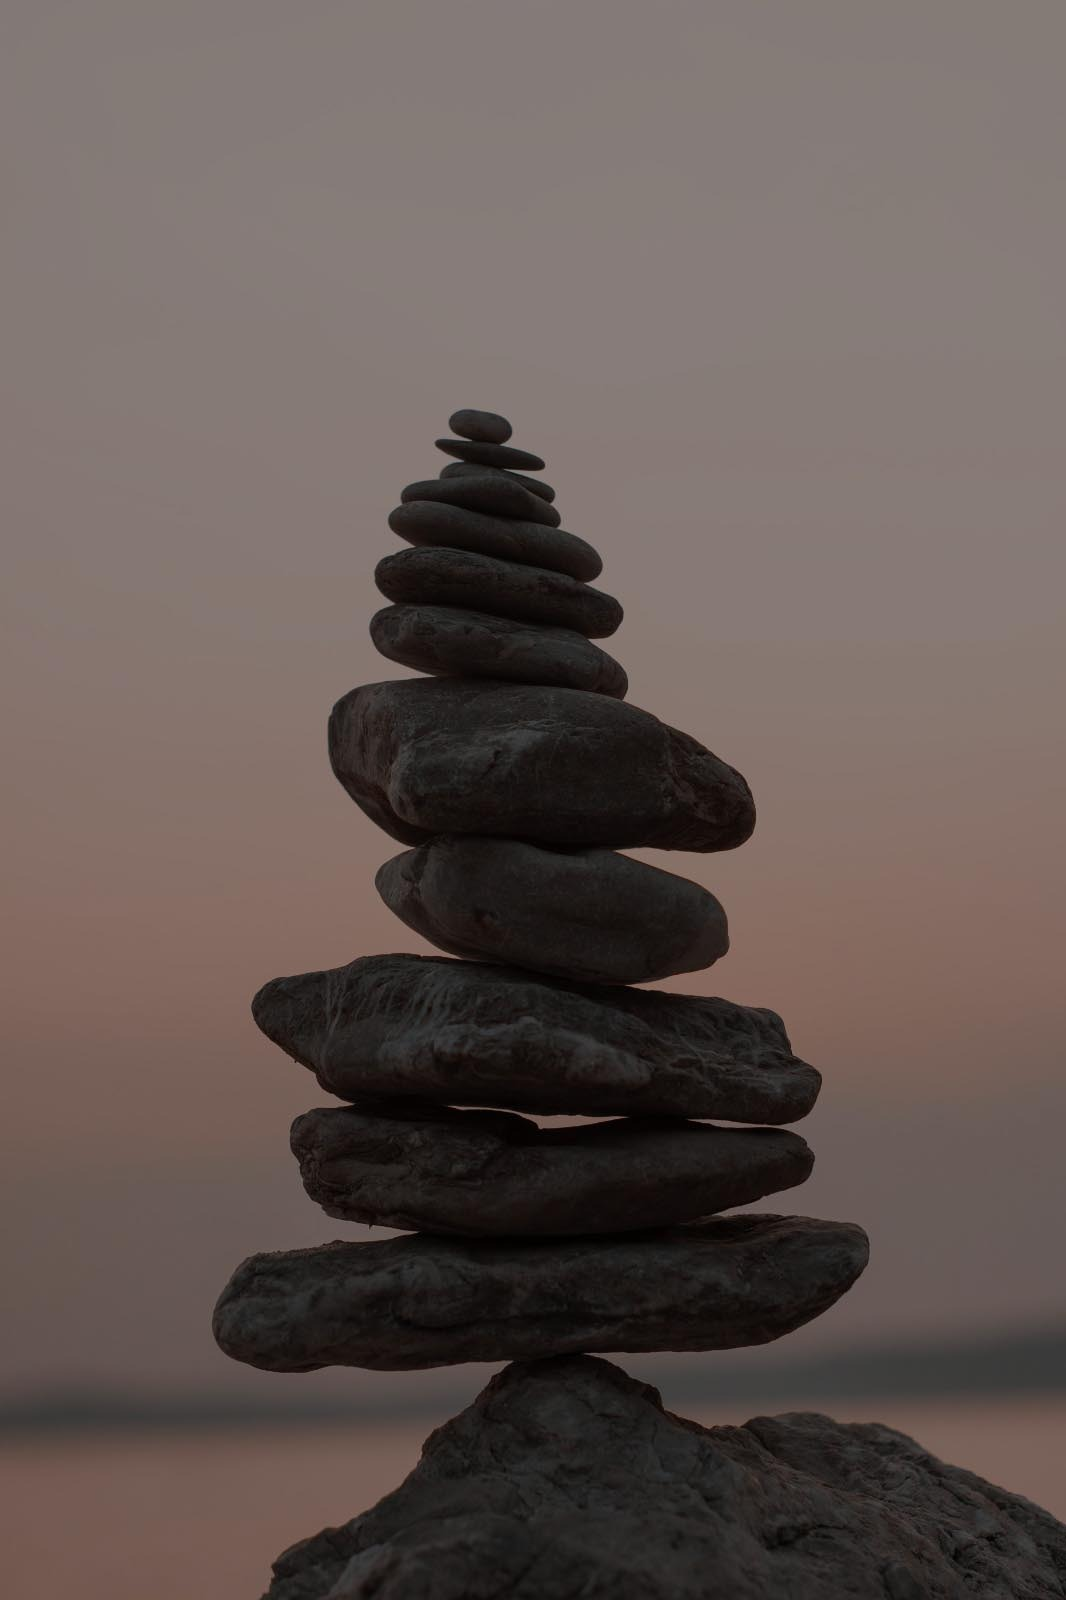 stones balancing on top of each other at sunset